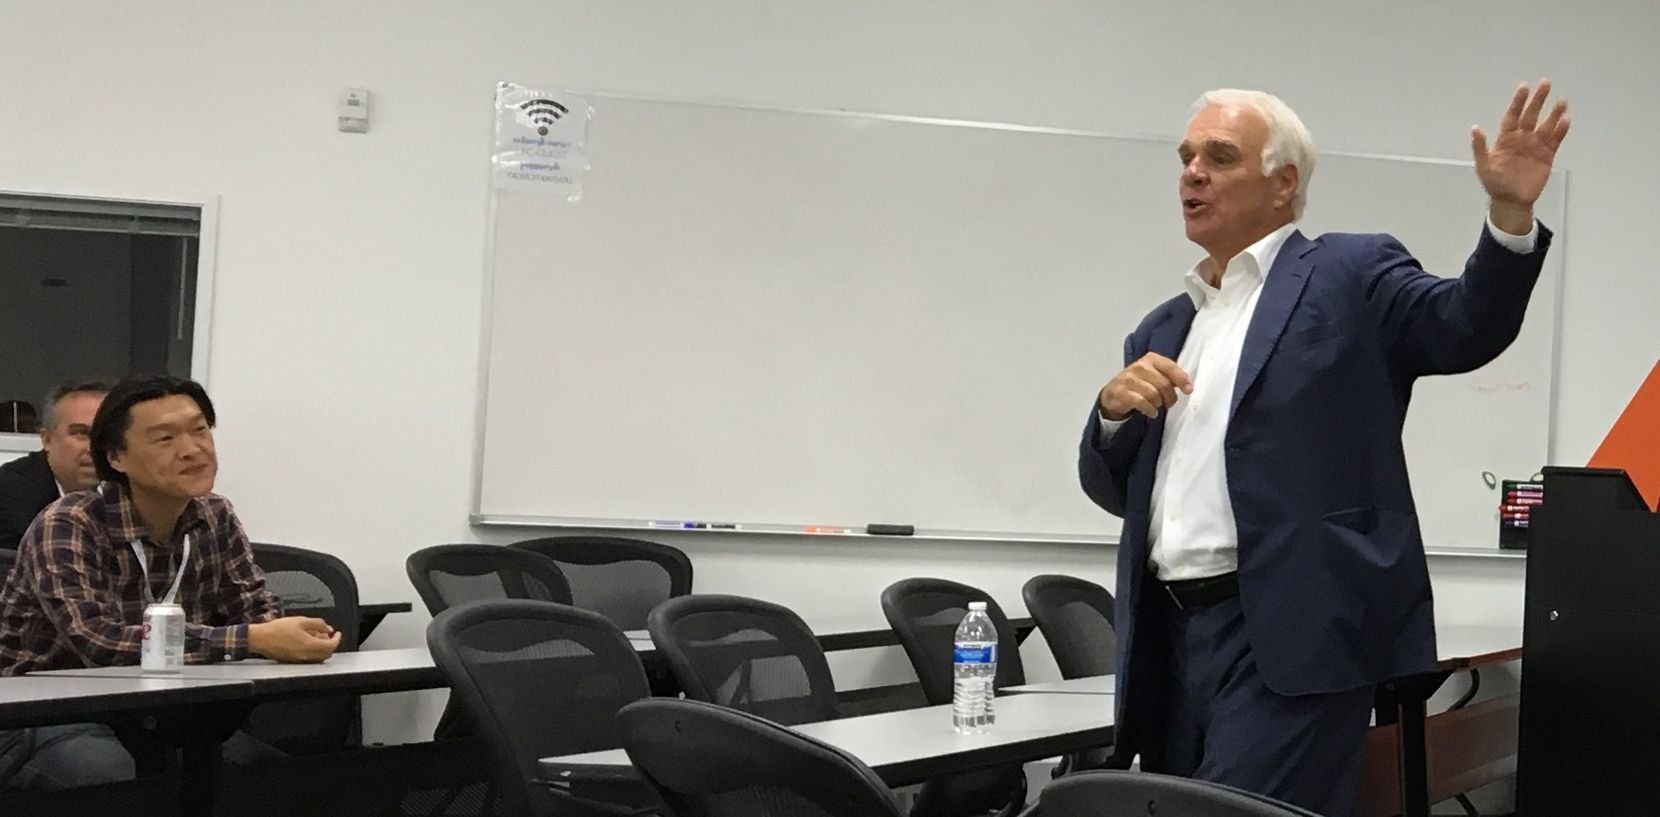 Dallas Stars CEO Jim Lites talks with entrepreneurs as part of a business accelerator program offered through Stadia Ventures.